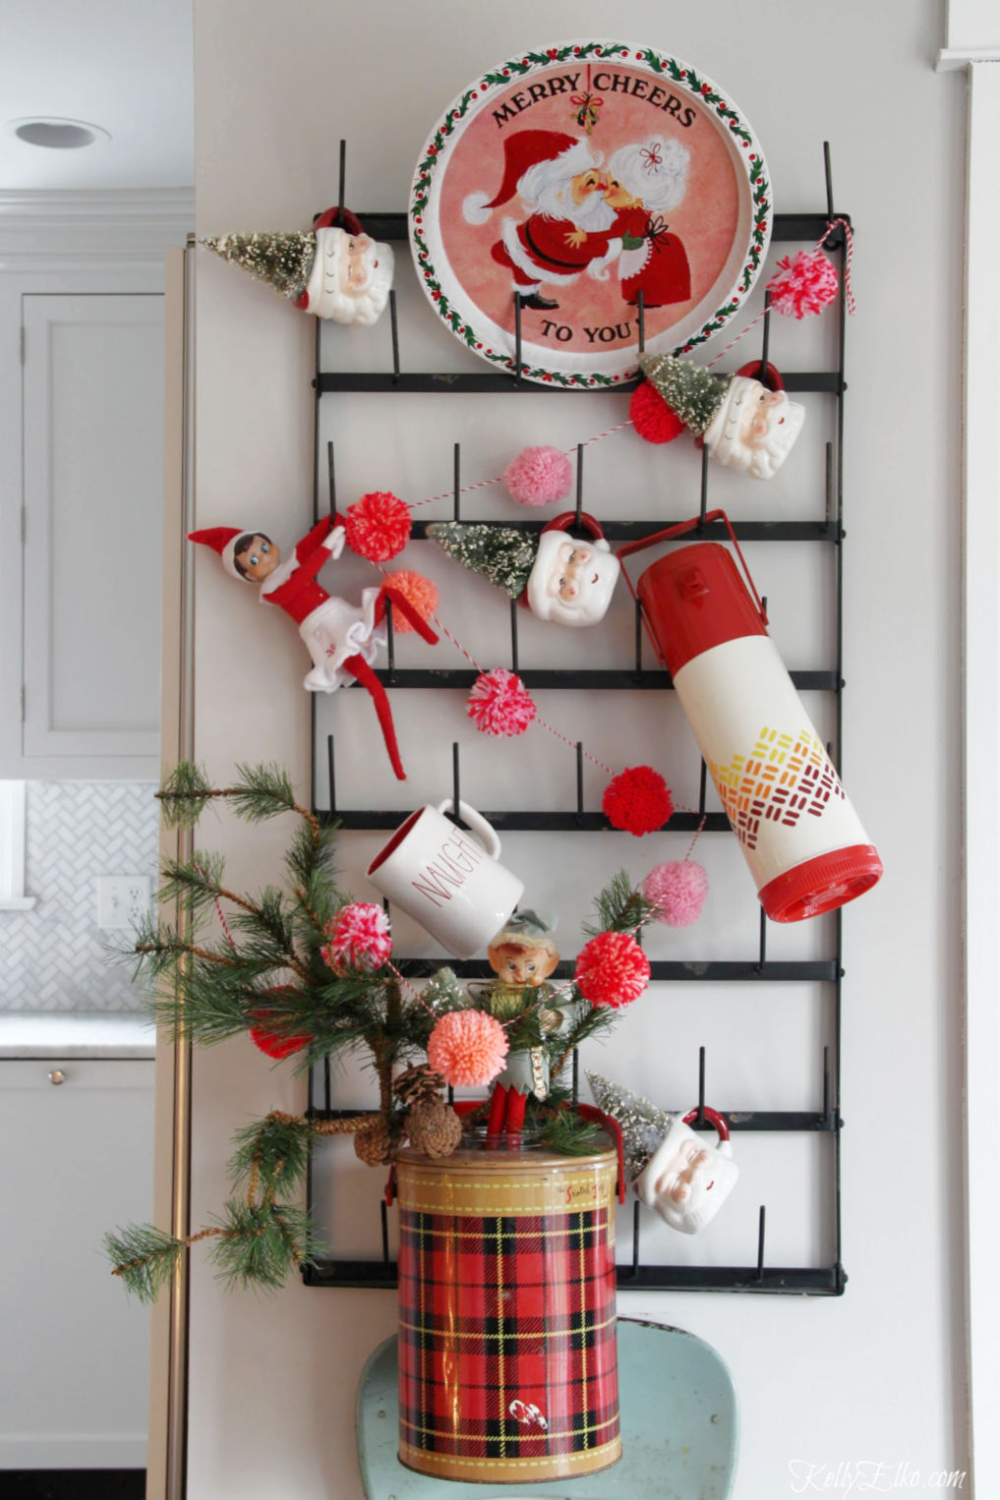 Creative Ways to Display, Craft and Store Bottle Brush Trees #mugdisplay Vintage Christmas display - love the Santa mugs and old thermoses kellyelko.com #vintage #vintagedecor #vintagechristmas #santa #christmasdecor #christmaskitchen #kellyelko #mugdisplay